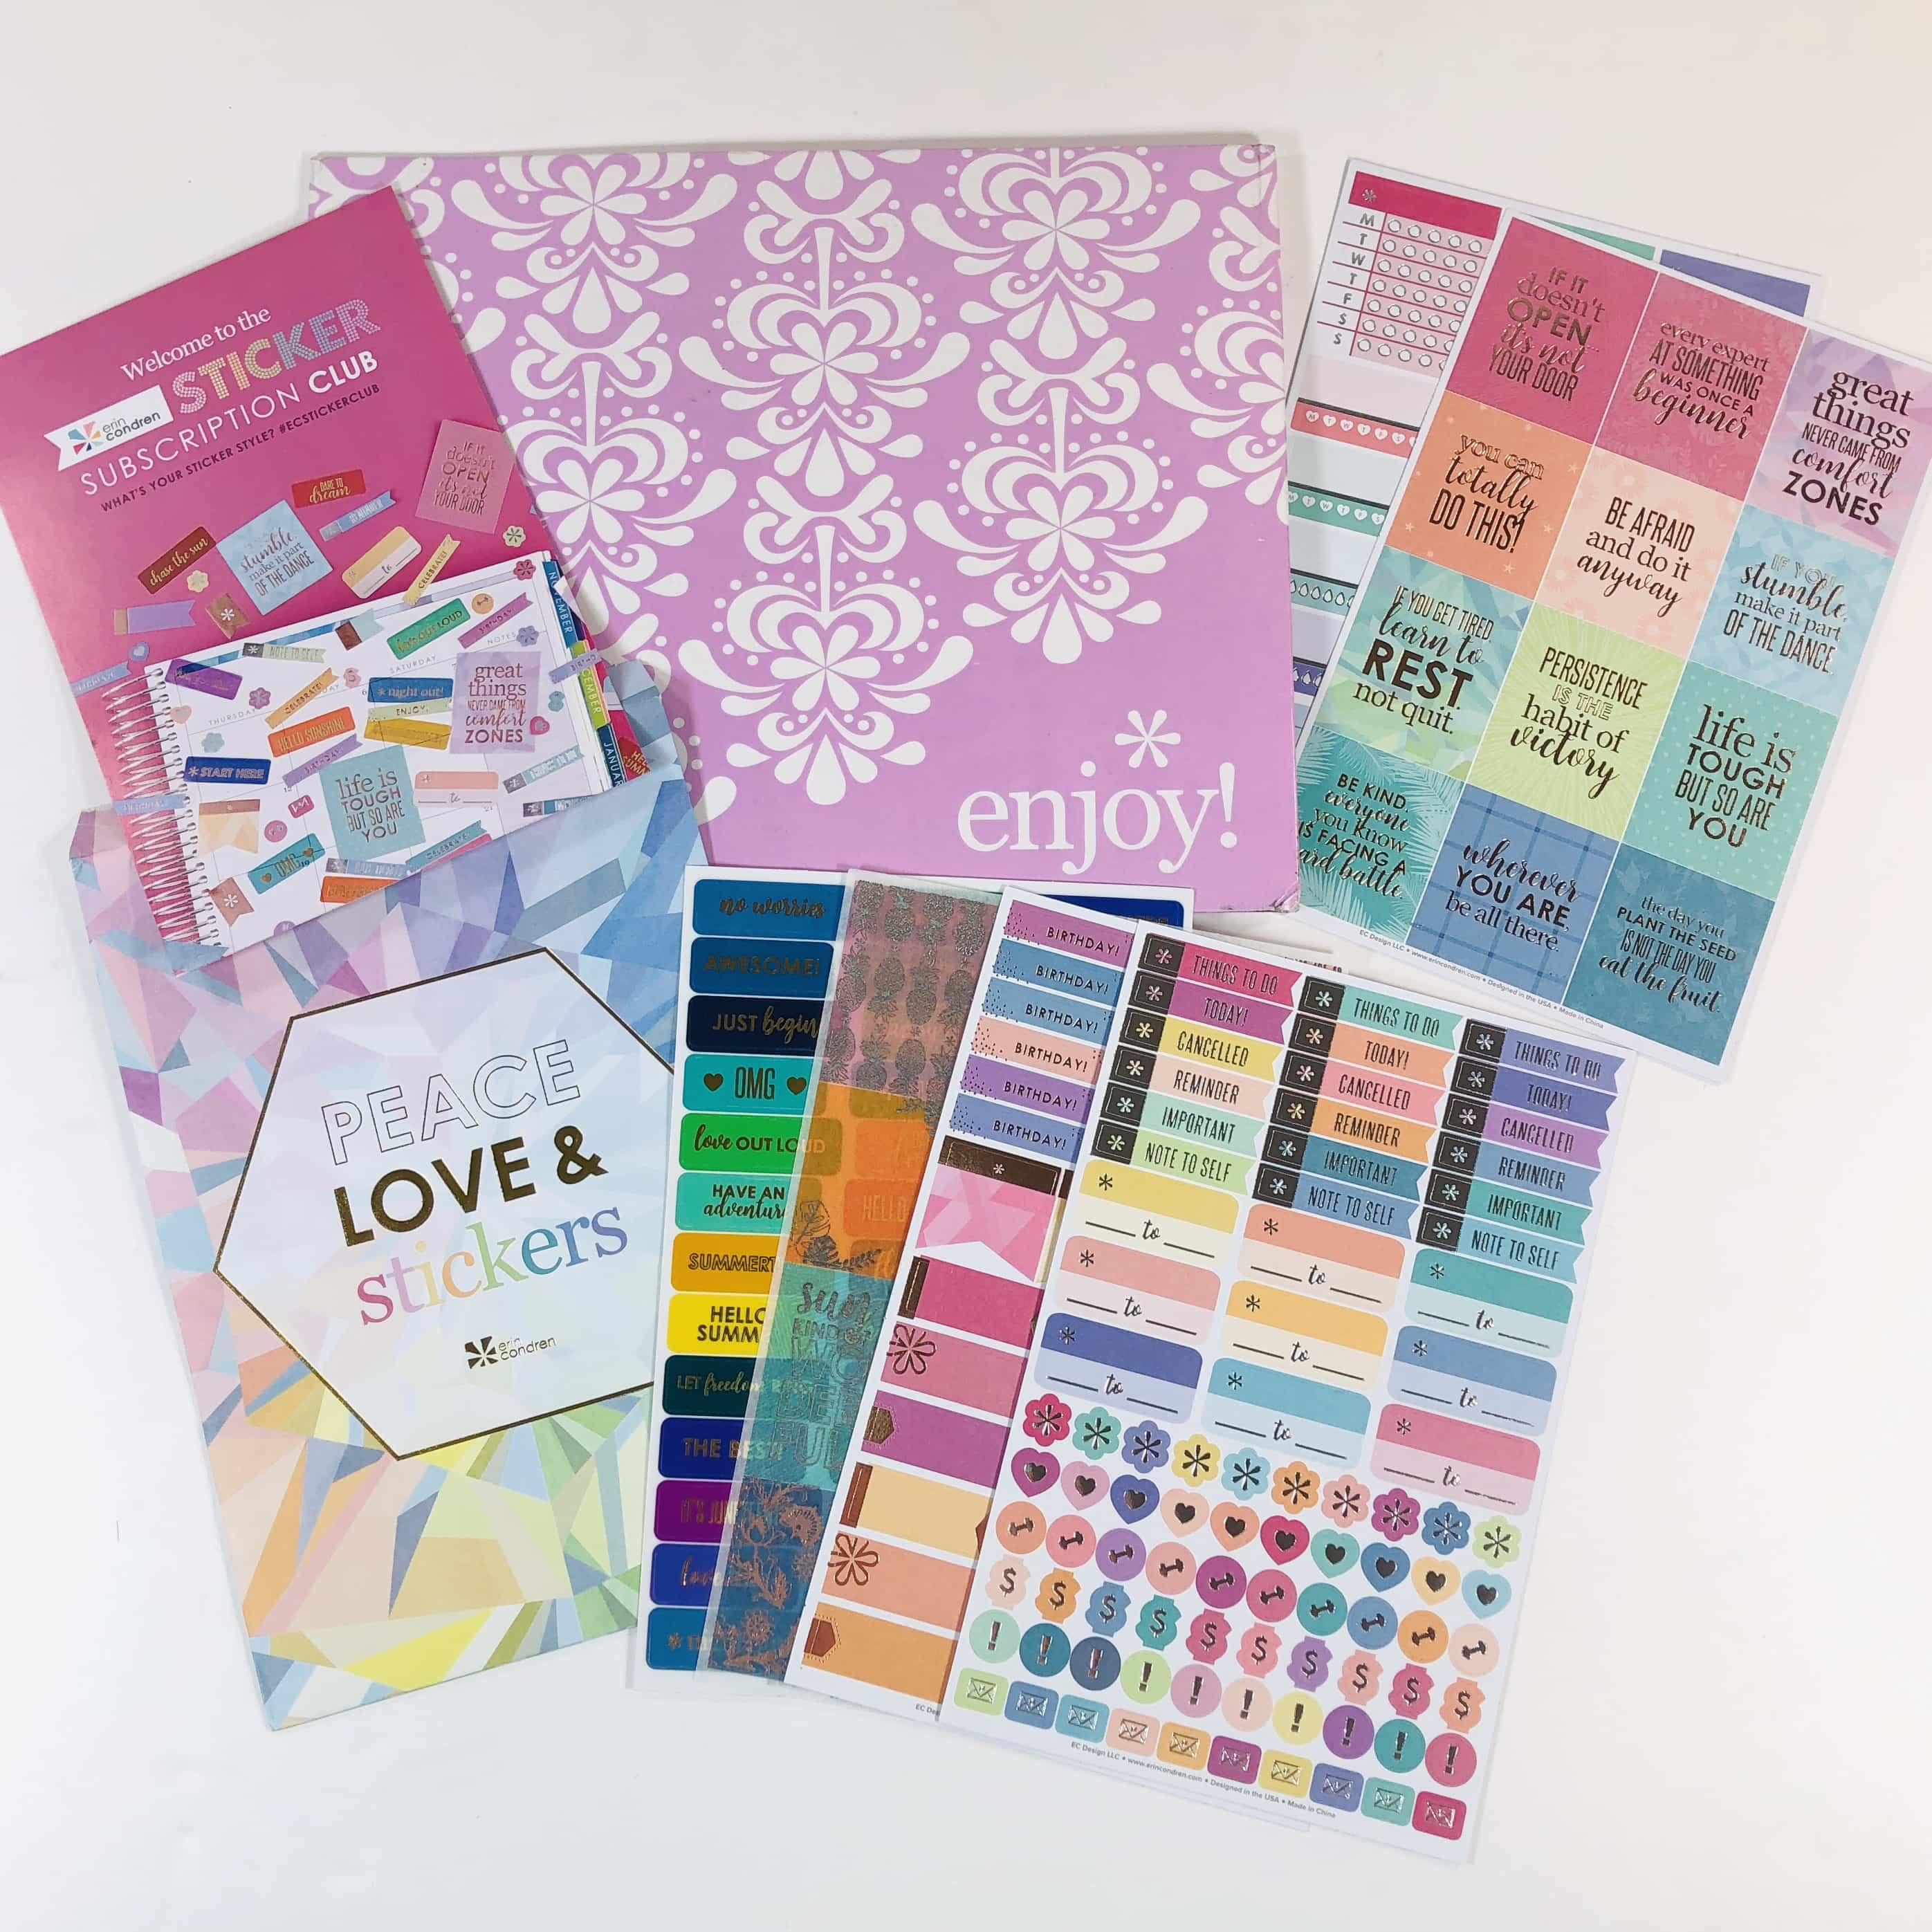 Erin Condren Sticker Club Summer 2019 Subscription Box Review